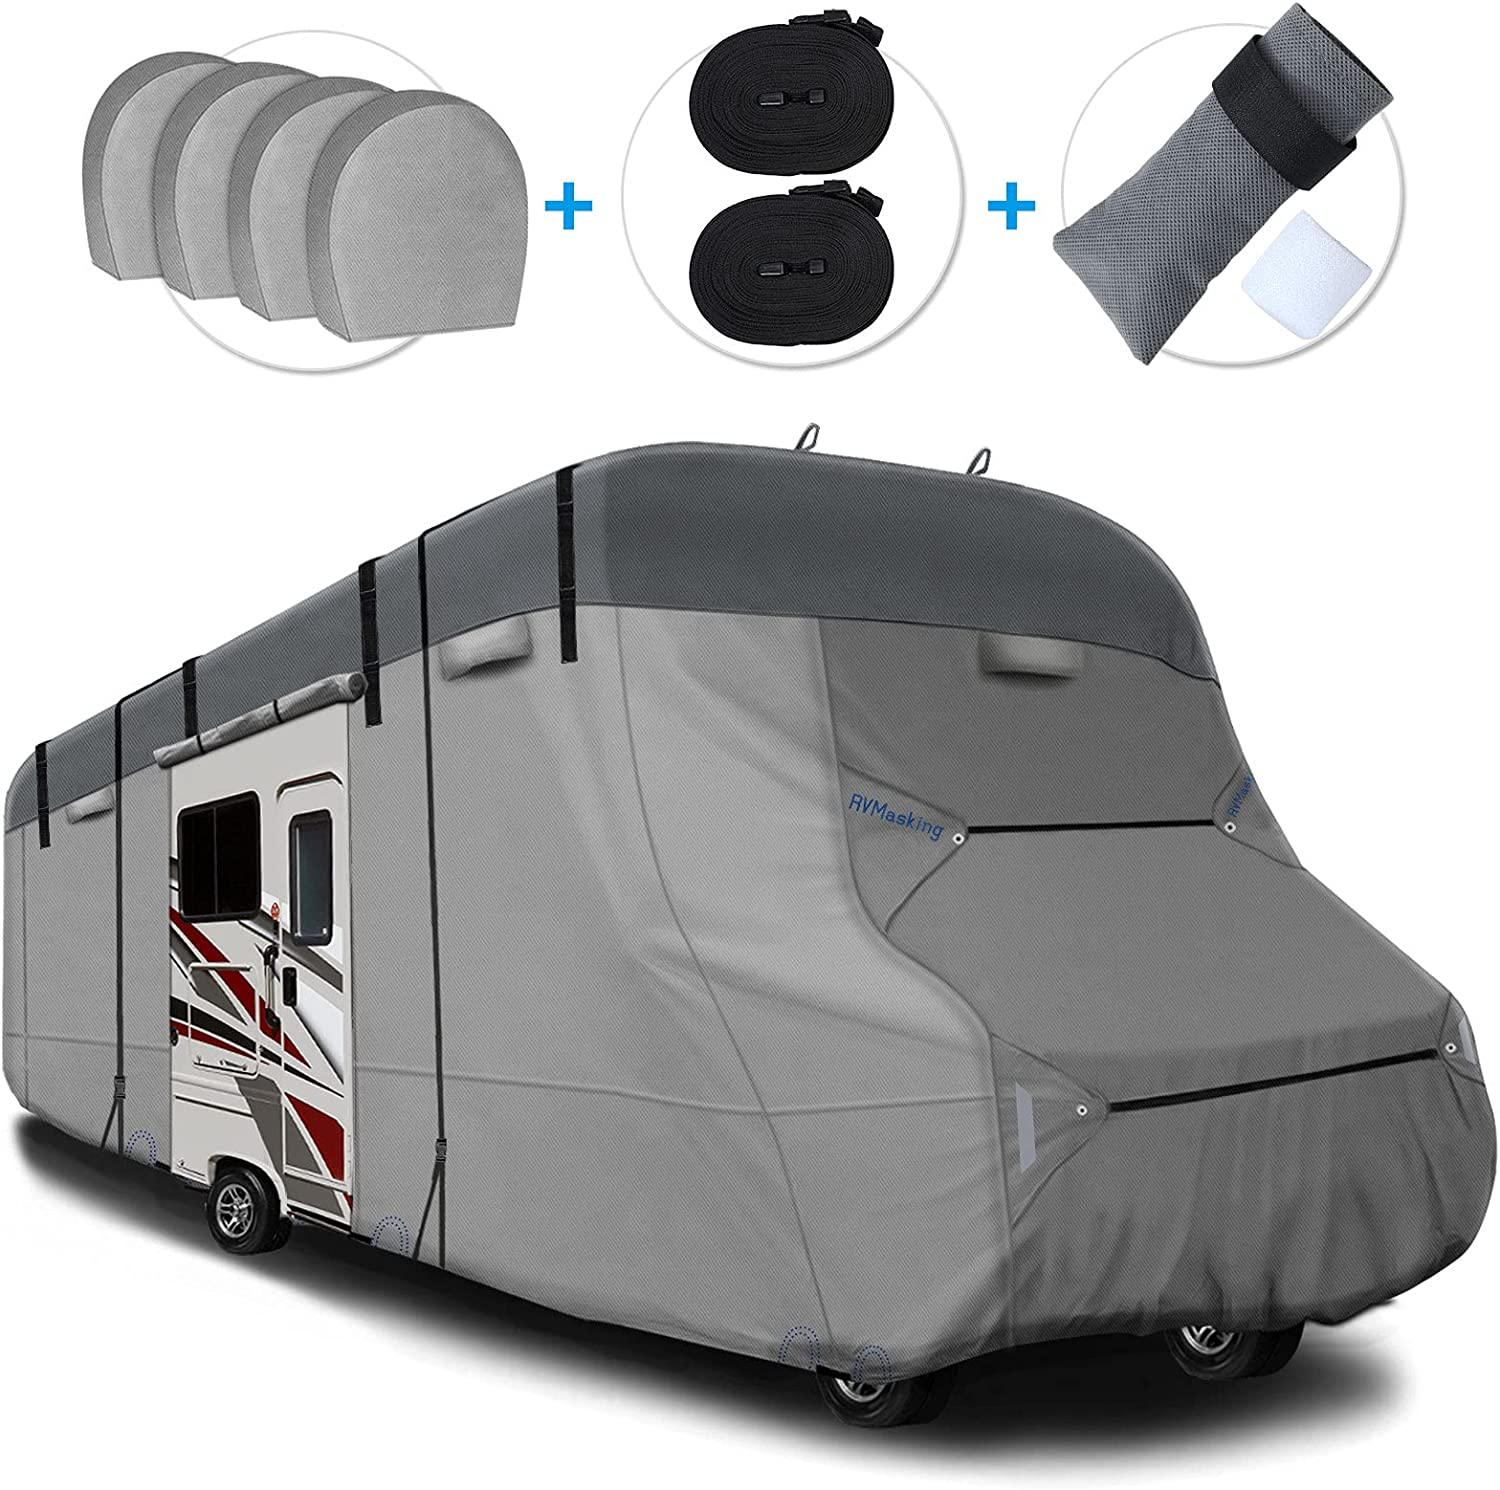 RVMasking 2021 Upgraded 6 Layers Top RV Class C Cover Windproof Camper Cover for 29' - 32' RV with 4 Tire Covers, Gutter Cover - Anti-uv Prevent Top Tearing Due to Sun Exposure